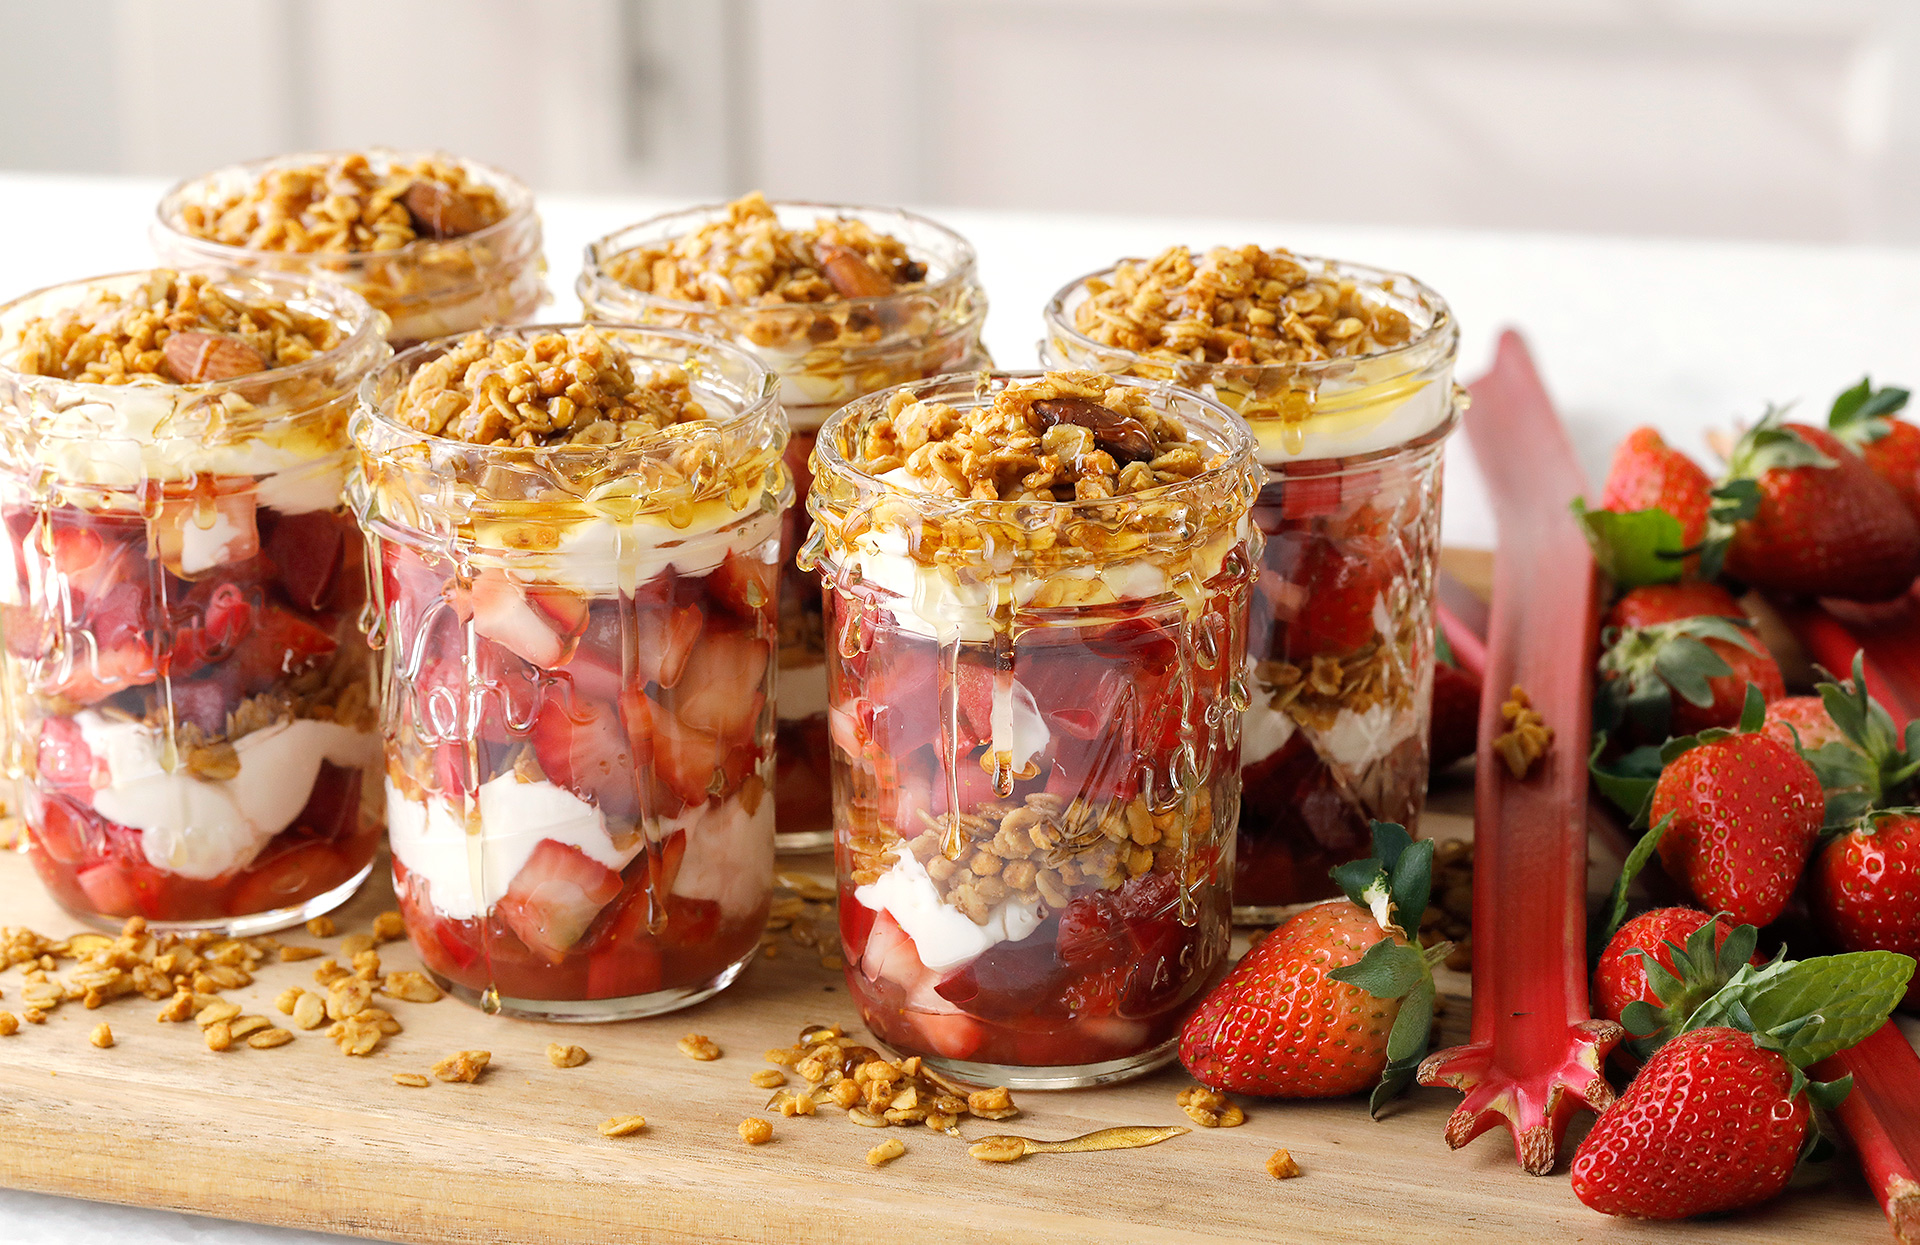 Healthy Rhubarb Recipes You Can Make in Just 45 Minutes (or Less!)